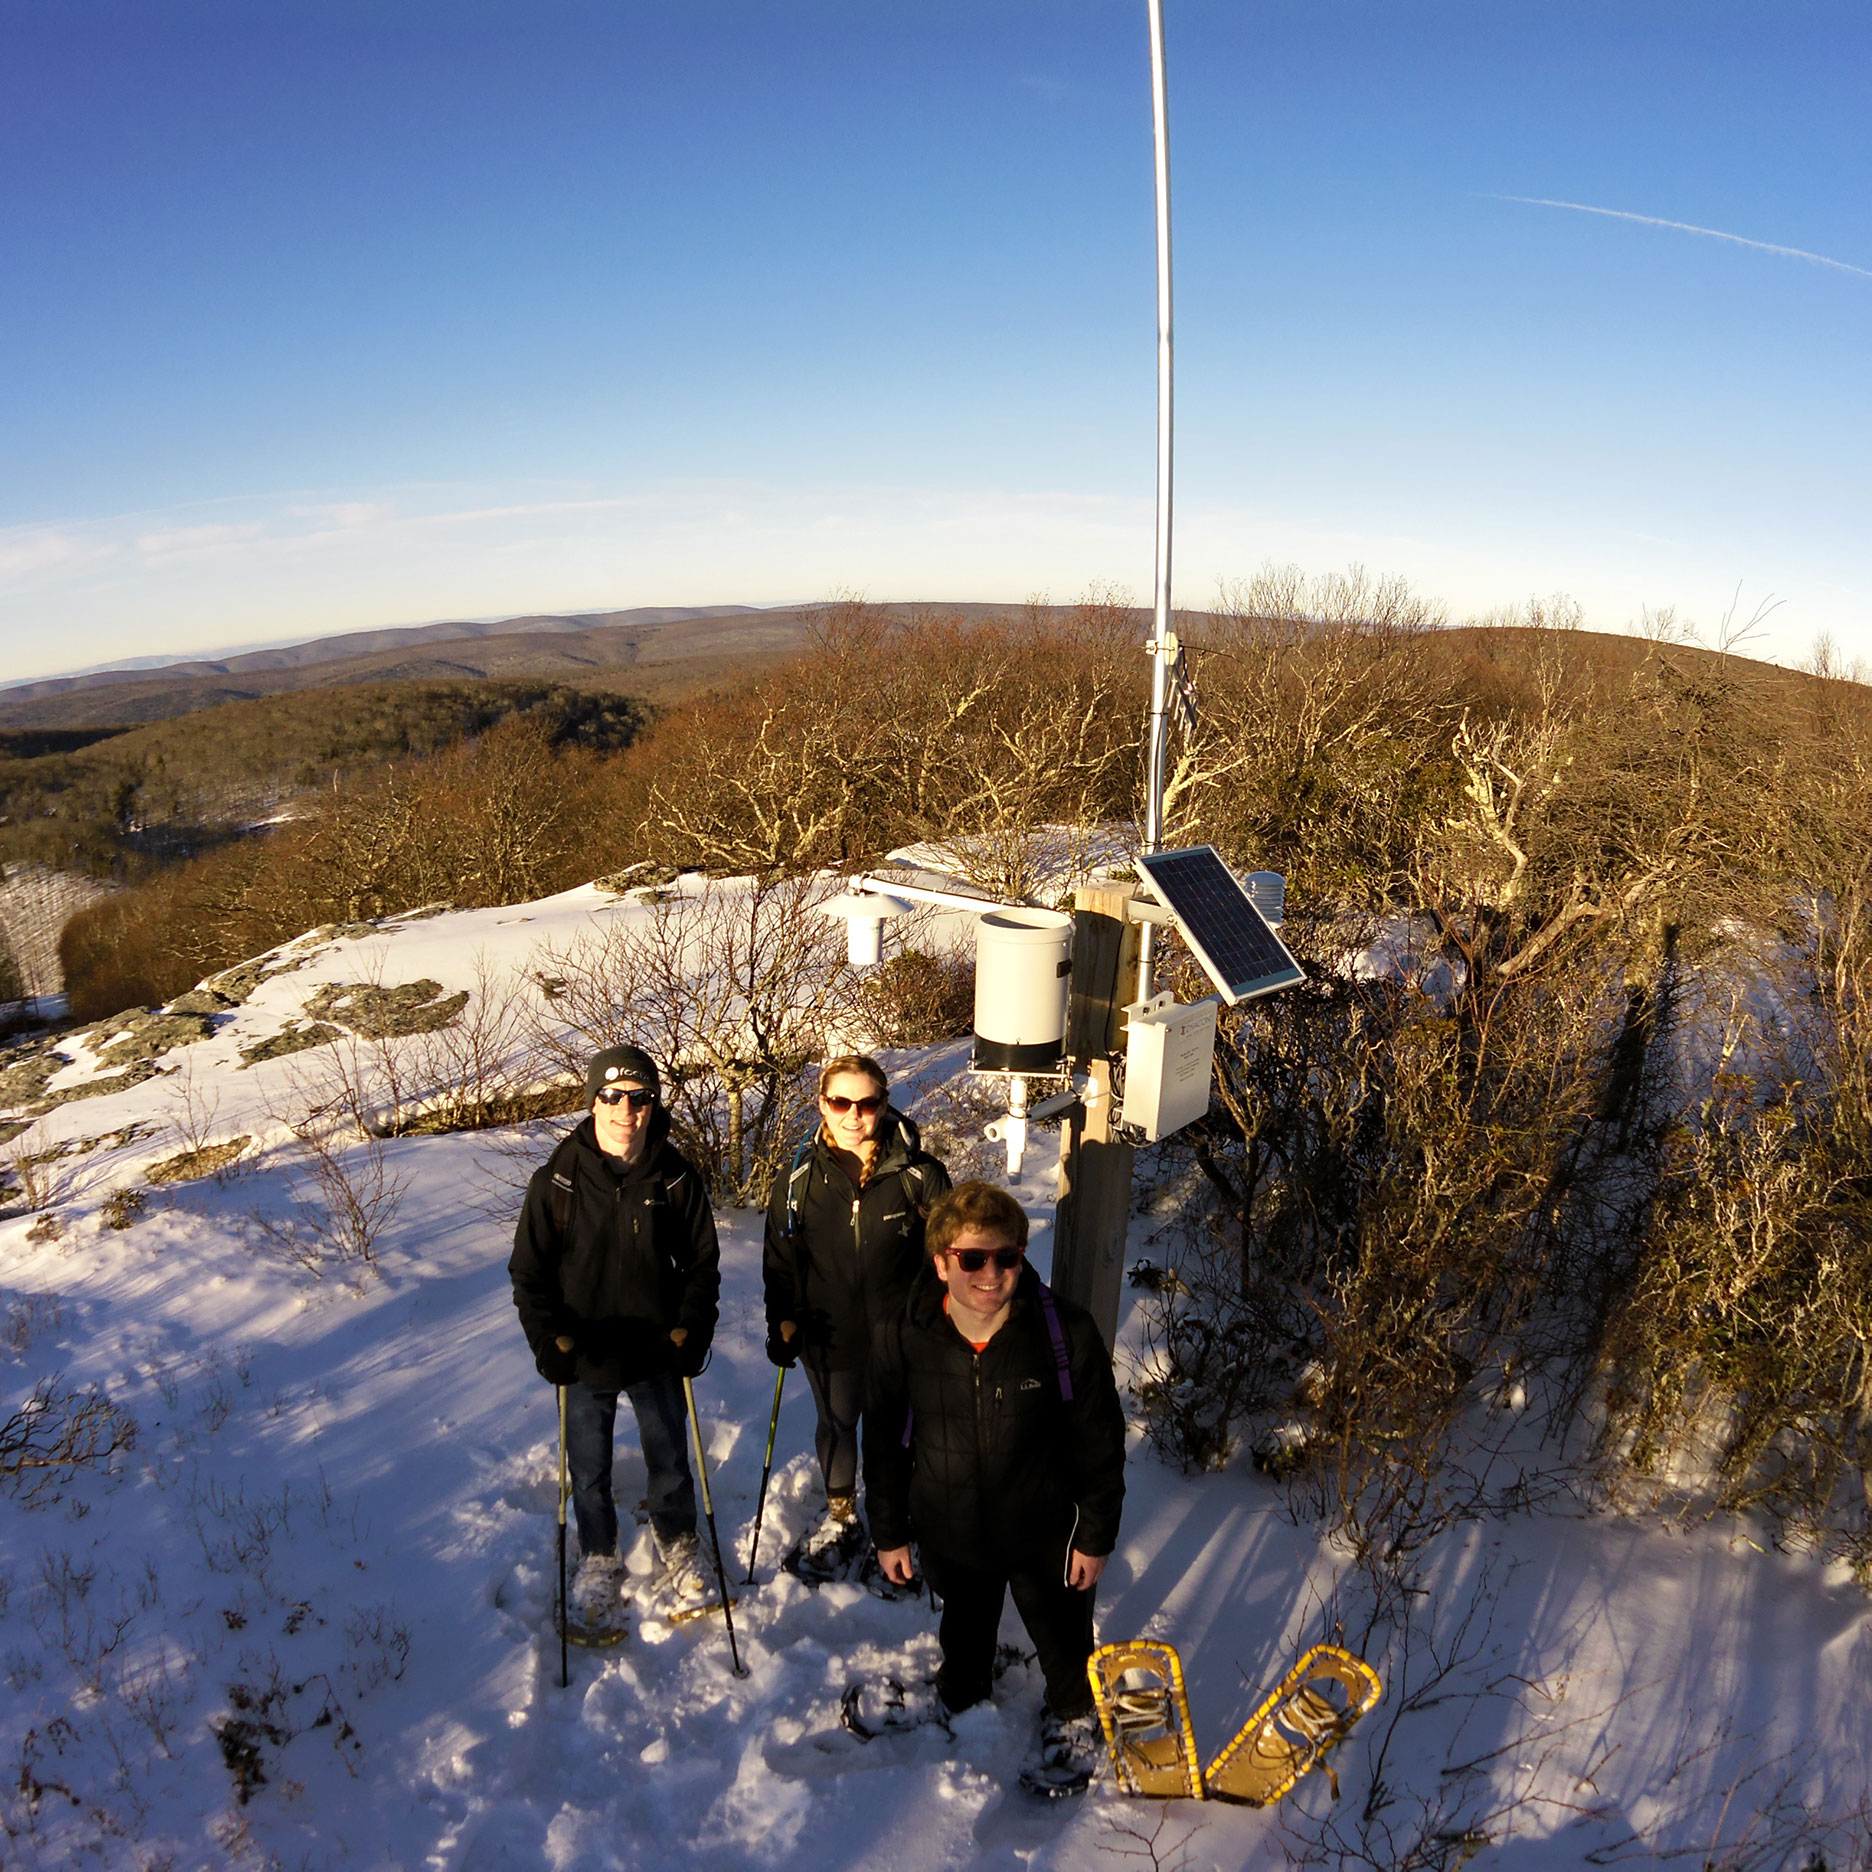 Three people stand in front of a weather station on a mountaintop, with snow on the ground.